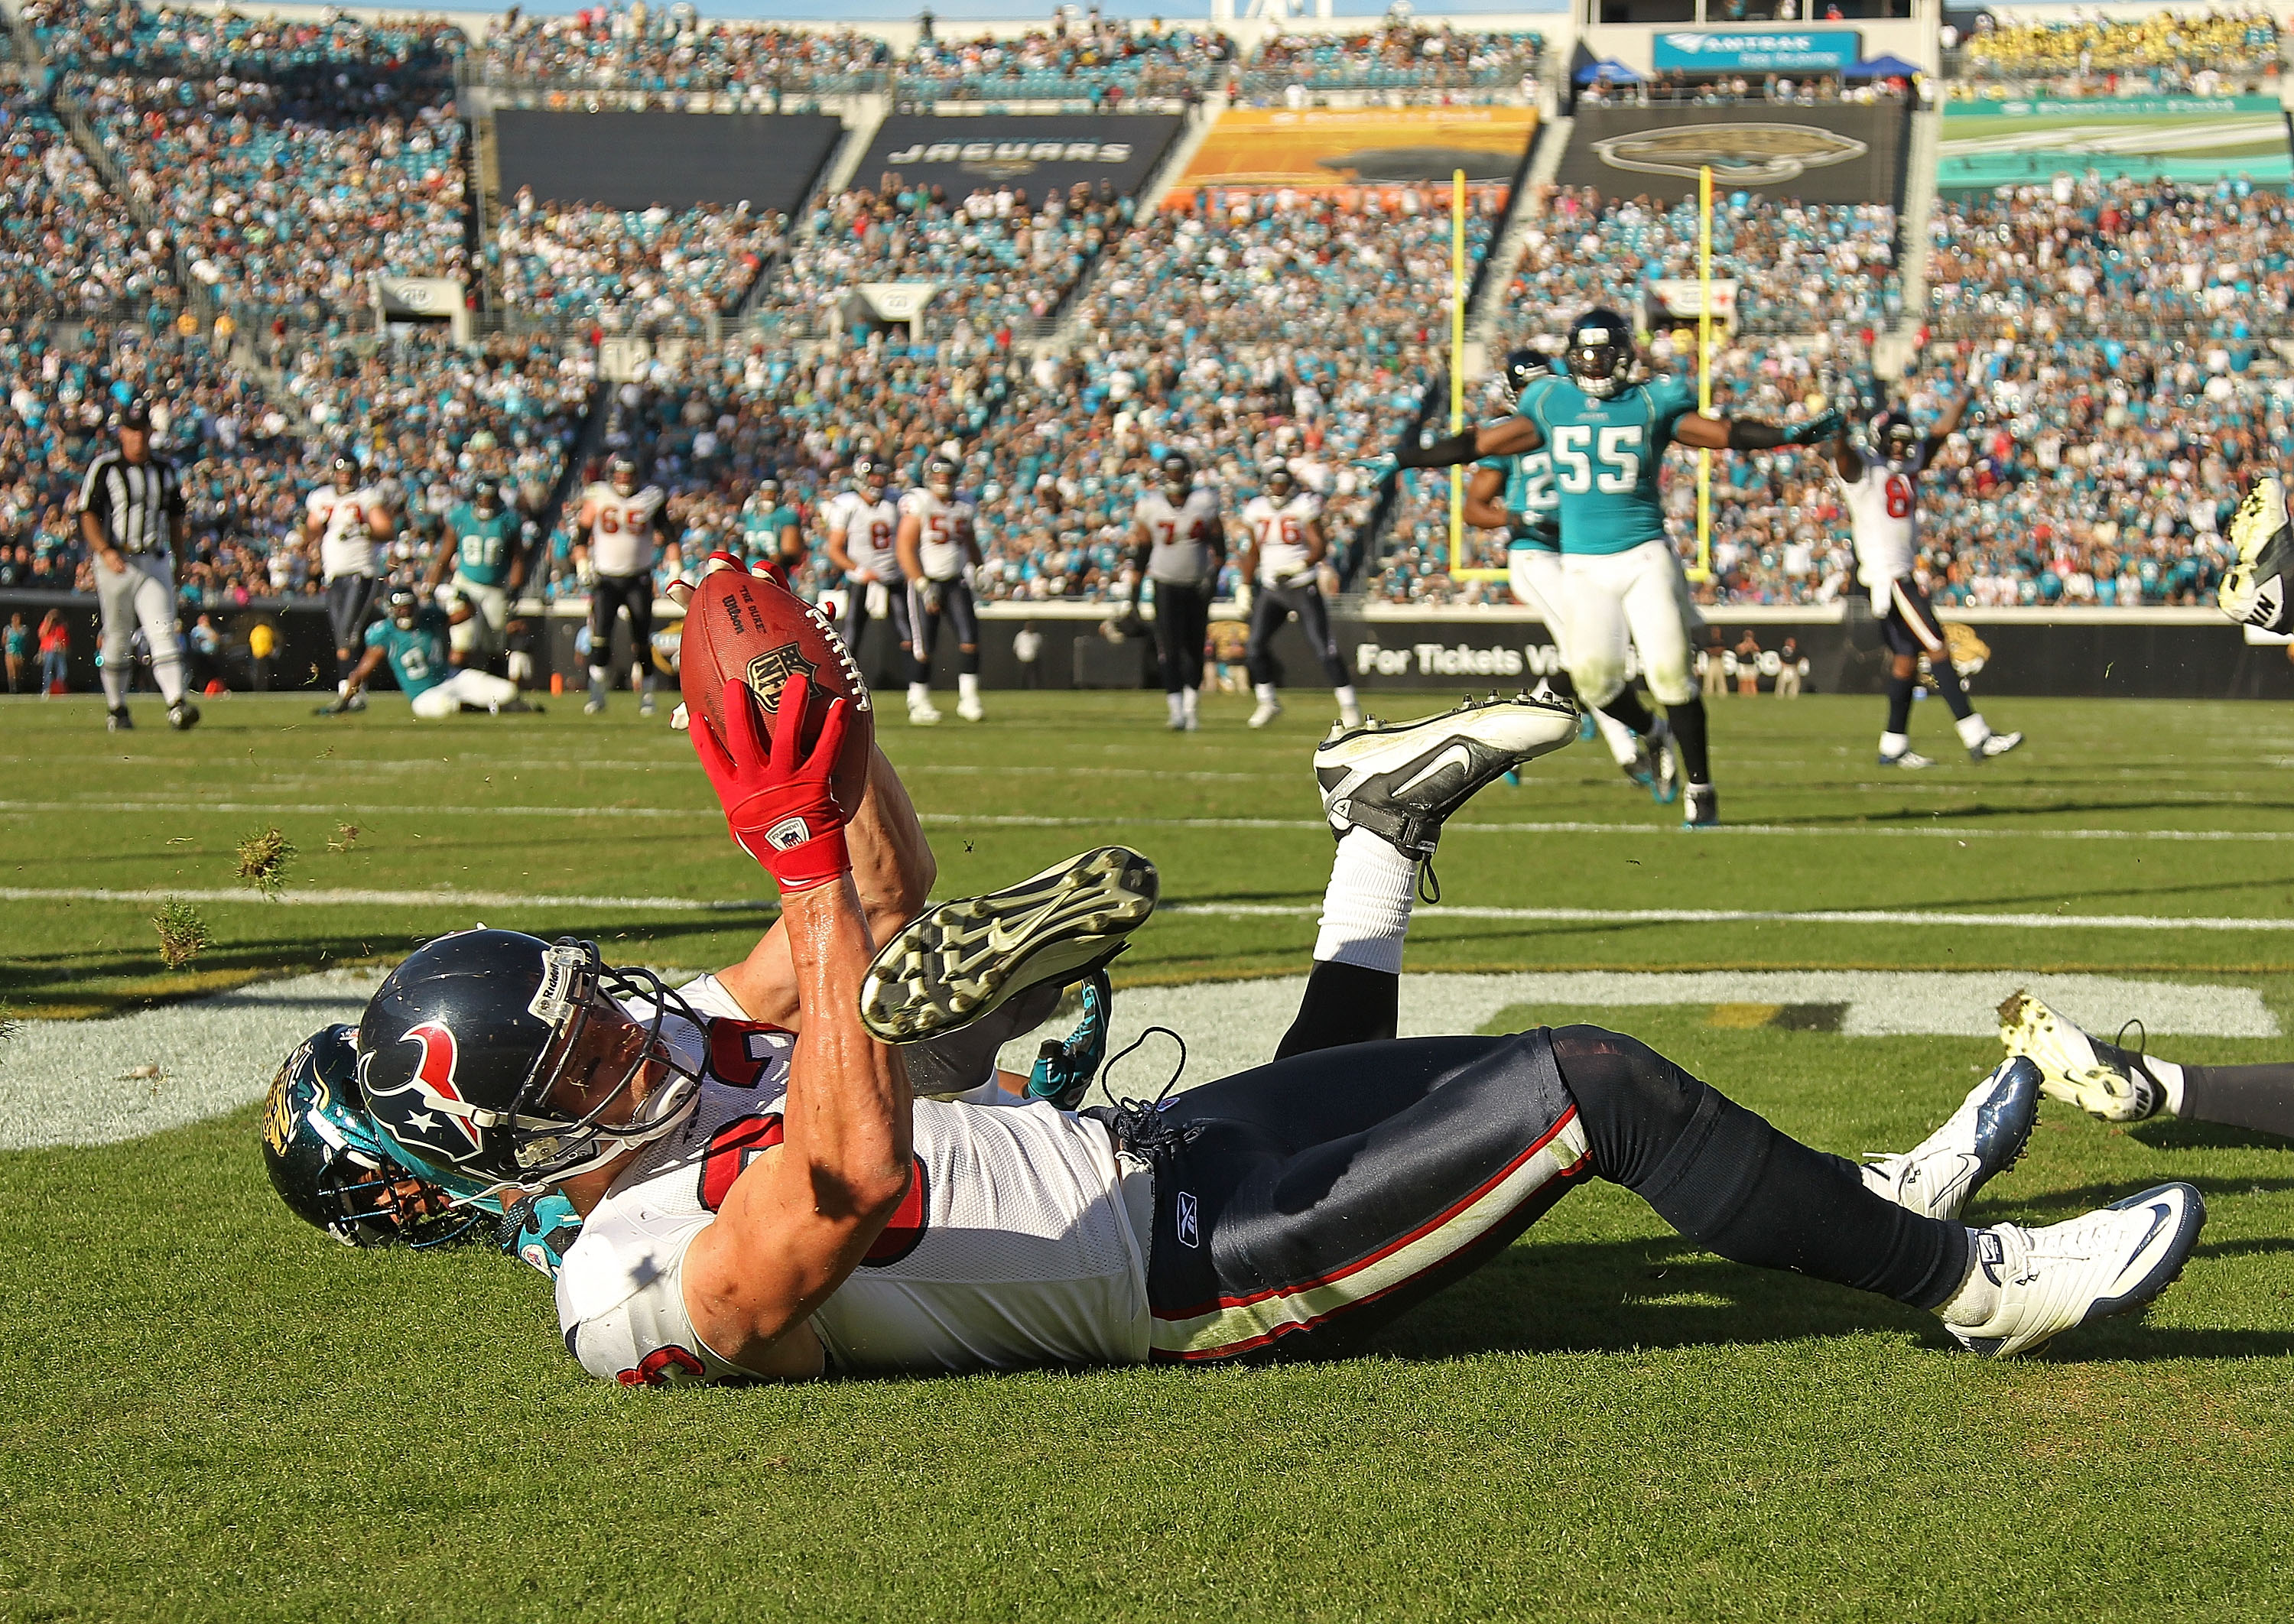 JACKSONVILLE, FL - NOVEMBER 14:  Kevin Walter #83 of the Houston Texans catches a touchdown pass during a game against the Jacksonville Jaguars at EverBank Field on November 14, 2010 in Jacksonville, Florida.  (Photo by Mike Ehrmann/Getty Images)